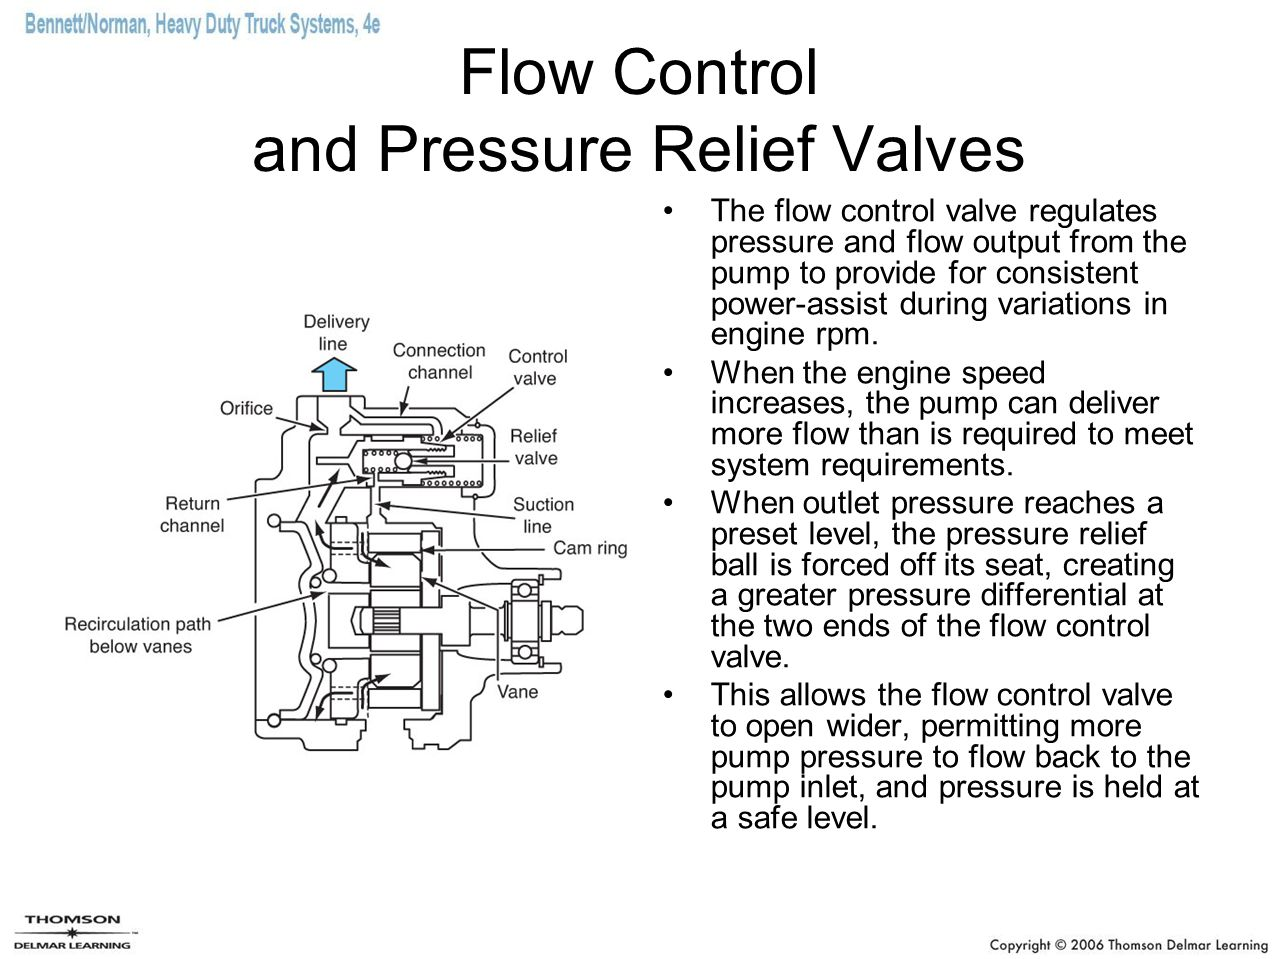 Flow Control and Pressure Relief Valves